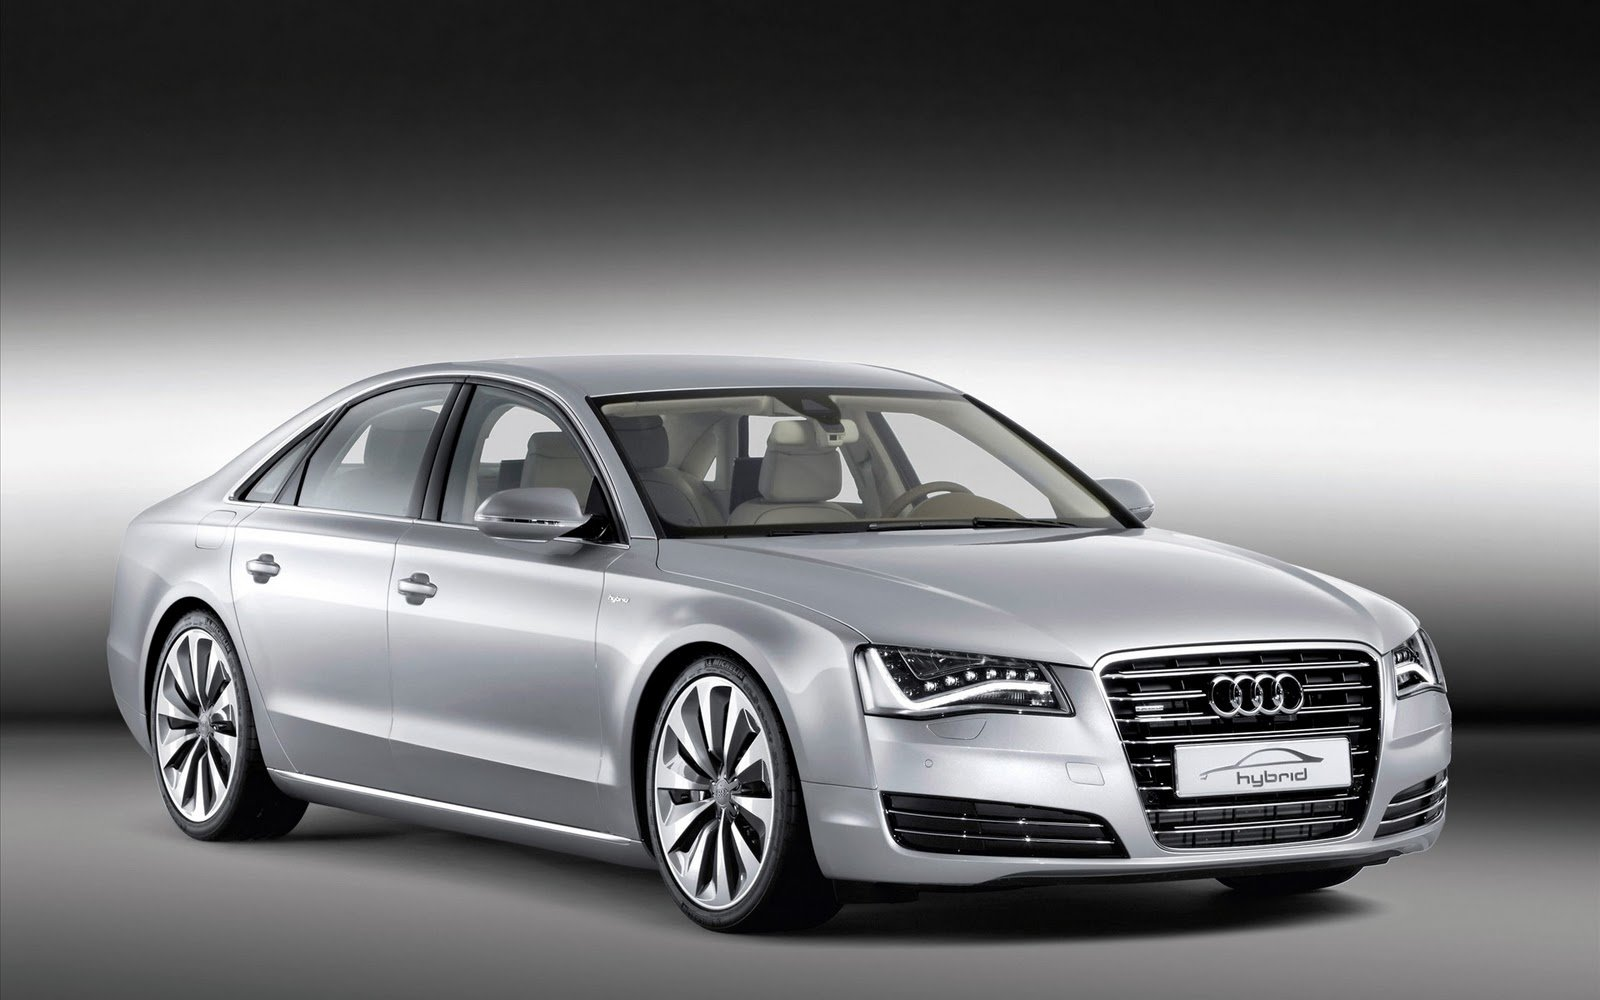 Latest Audi Car Wallpapers Hd Nice Wallpapers Free Download